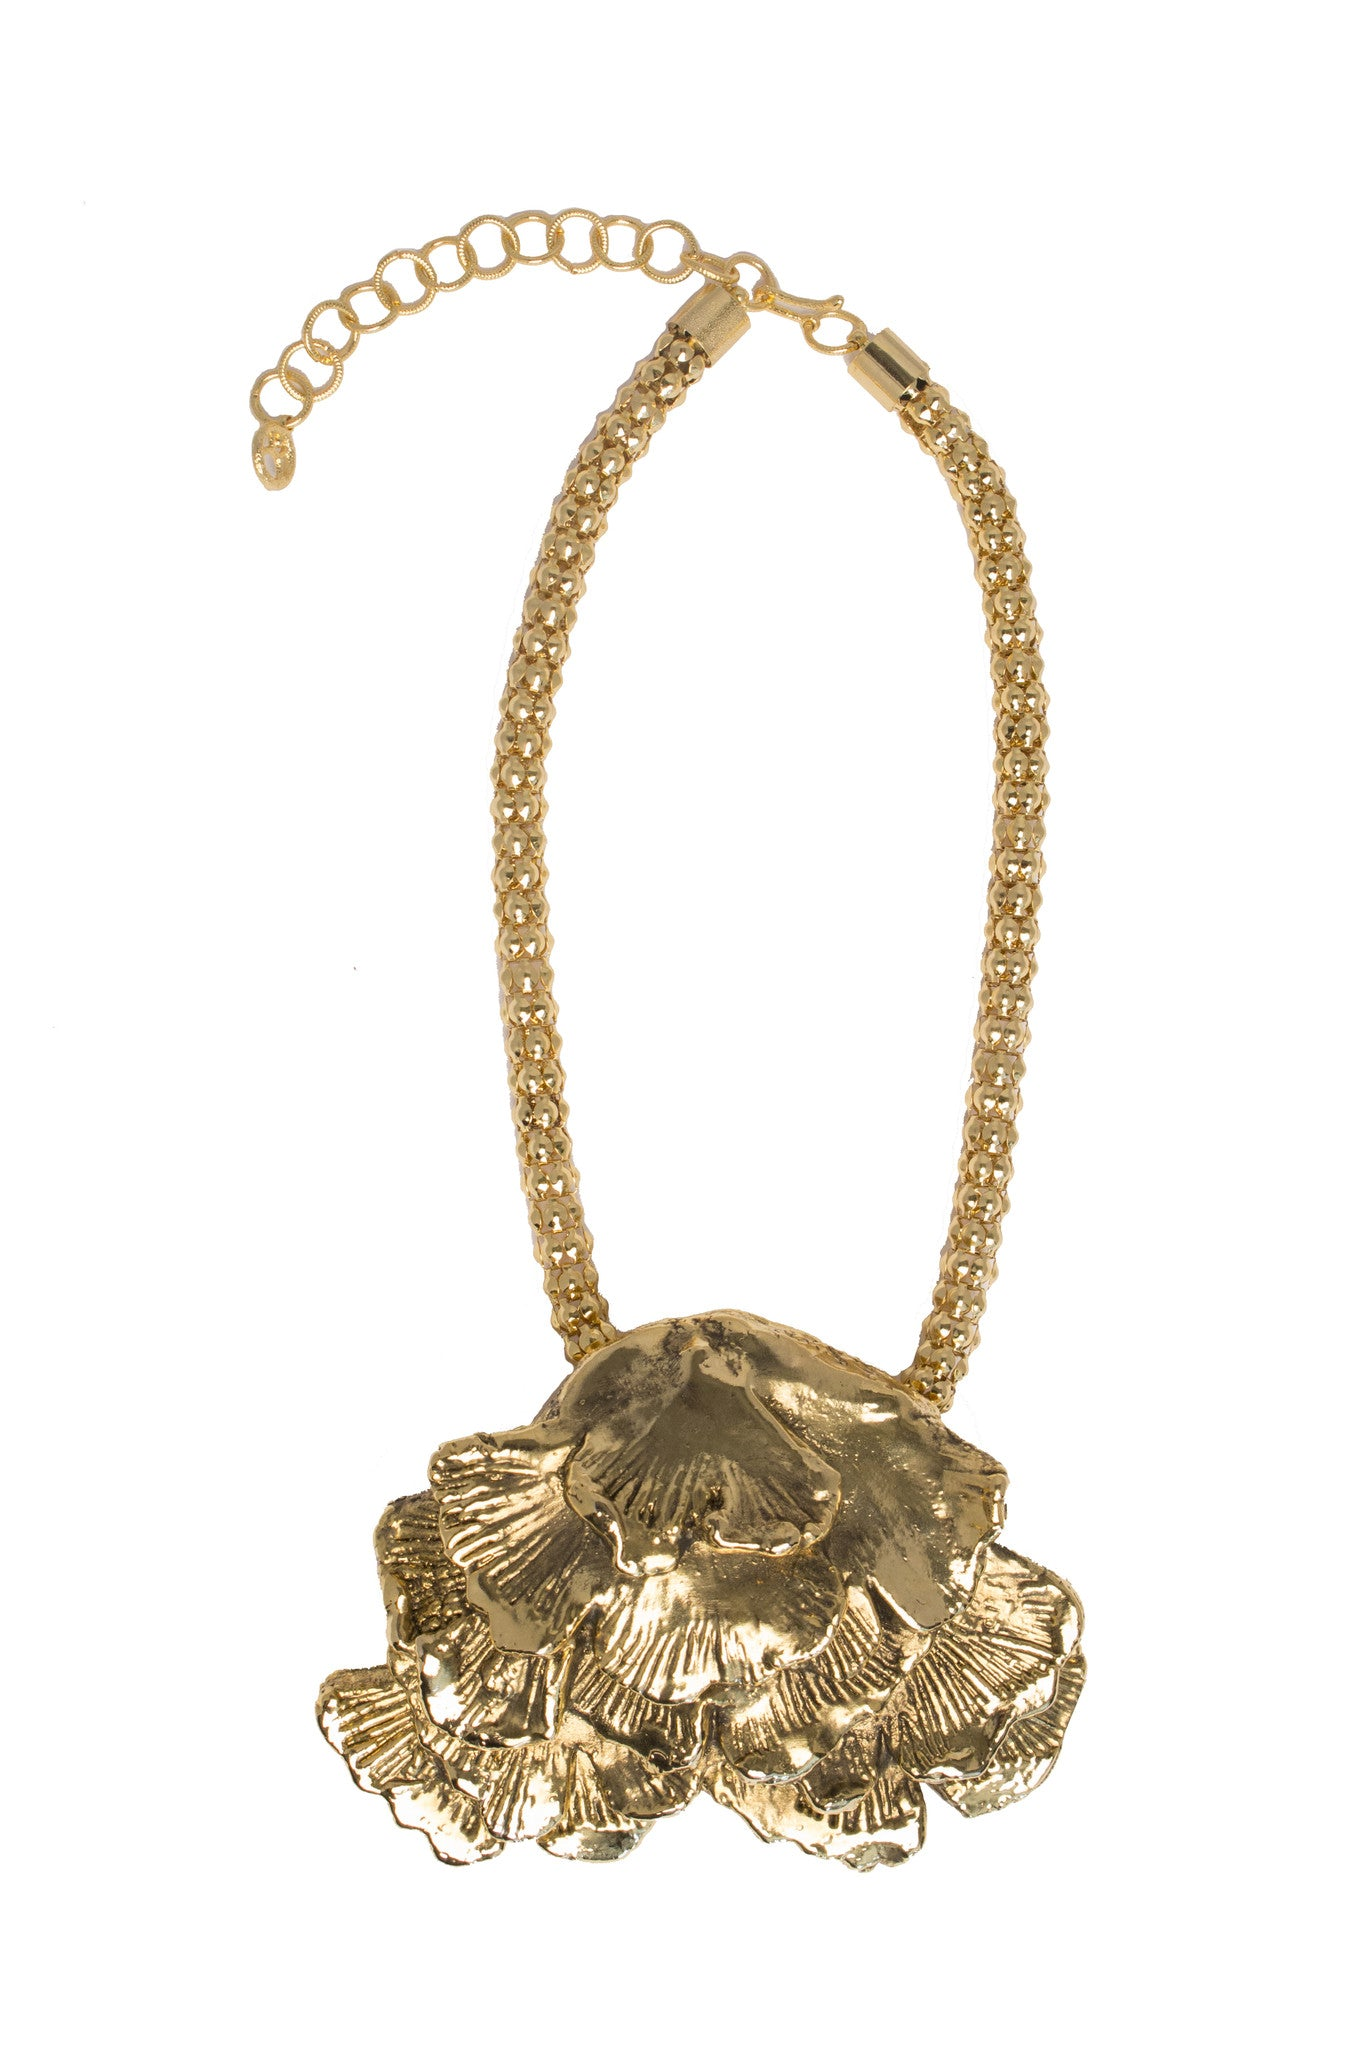 seaweed in gold plated necklace and chain Designed by Alexandra Koumba